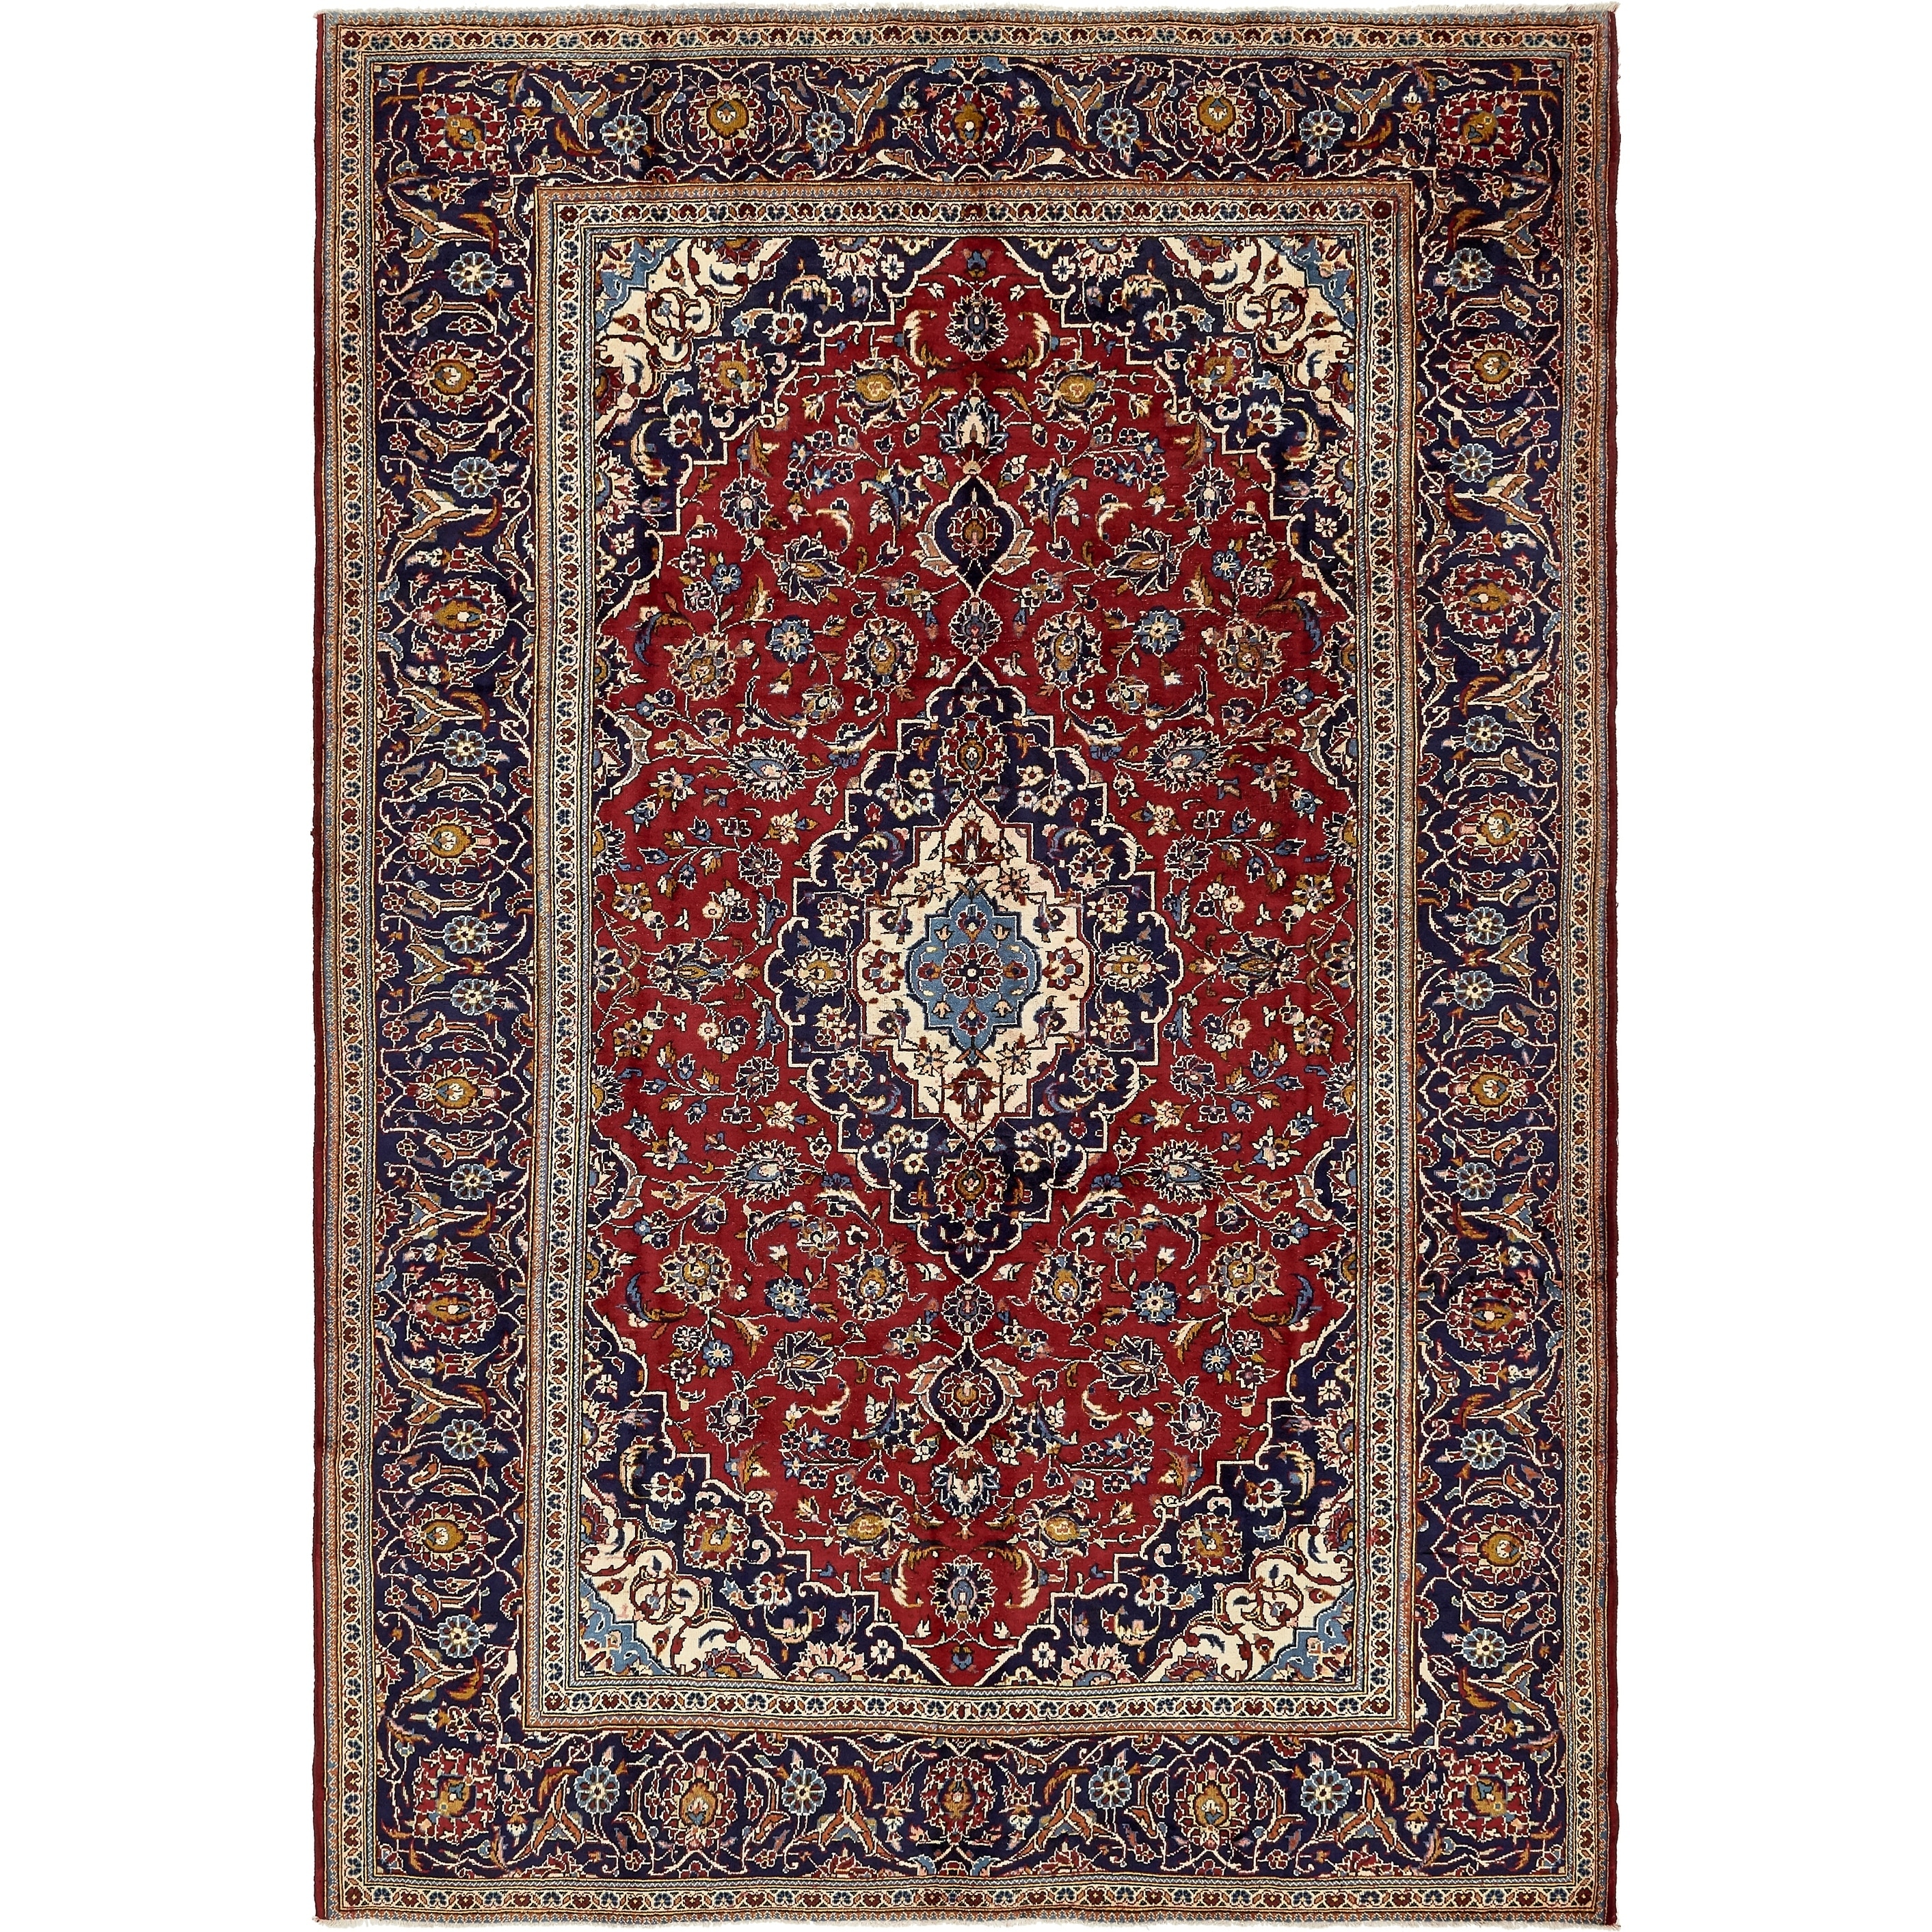 Hand Knotted Kashan Semi Antique Wool Area Rug - 7 10 x 11 6 (Red - 7 10 x 11 6)